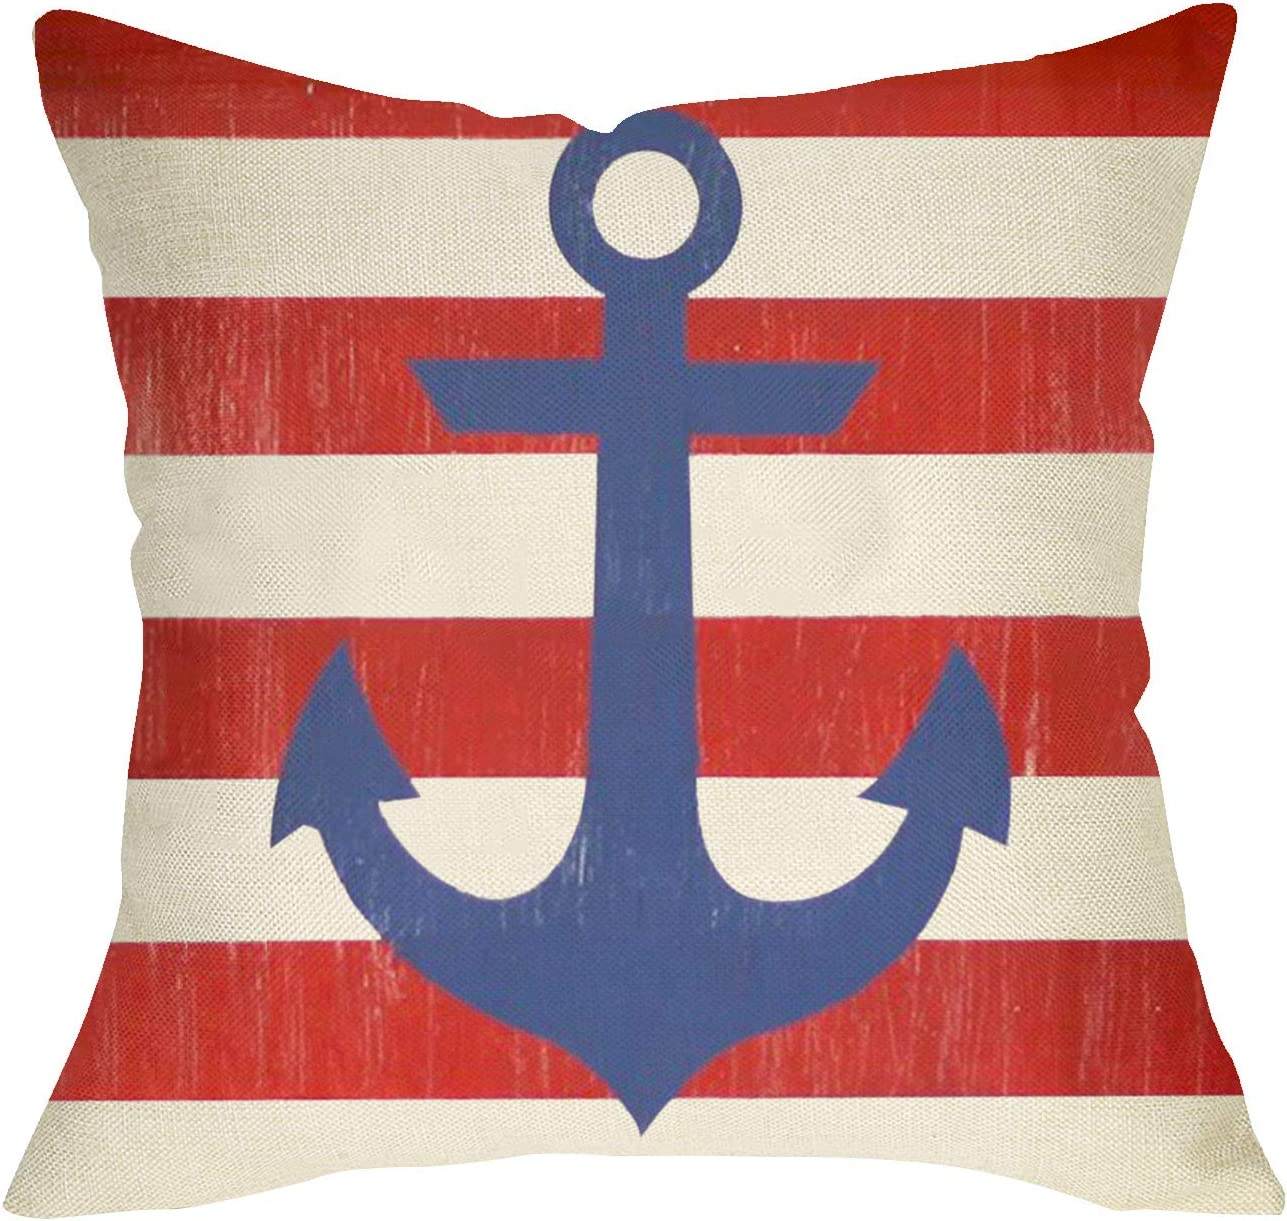 Softxpp Nautical Throw Pillow Cover Anchor Sign, USA Stripes Decorative Cushion Case American Flag Home Decorations, Summer Outdoor Square Pillowcase Red White Blue Decor for Sofa Couch 18 x 18 Inch